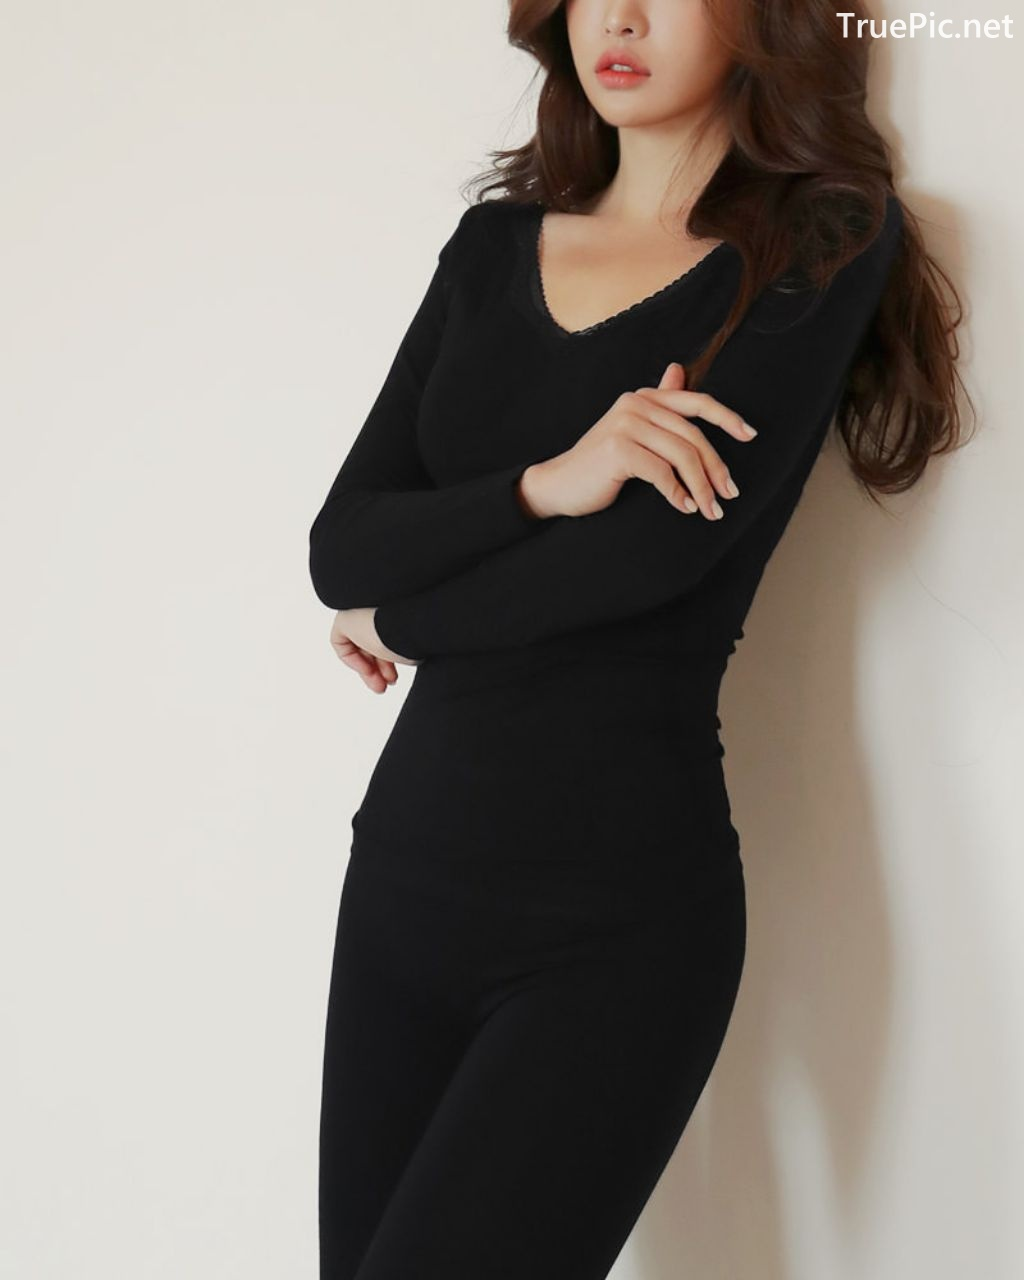 Image-Korean-Fashion-Model-Jin-Hee-Black-Tights-And-Winter-Sweater-Dress-TruePic.net- Picture-7